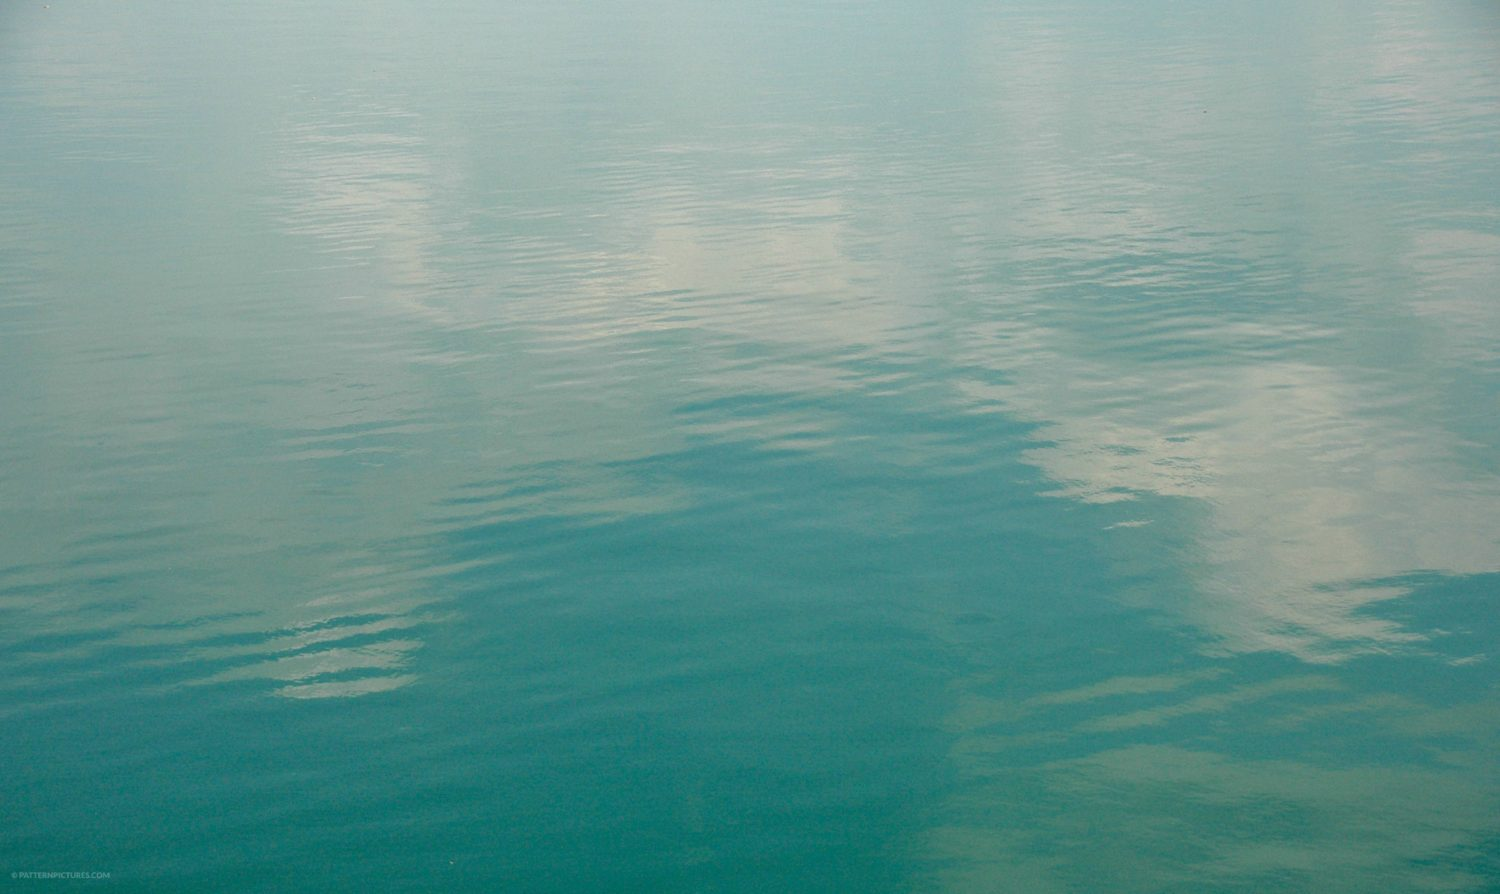 Sea water texture clouds reflection